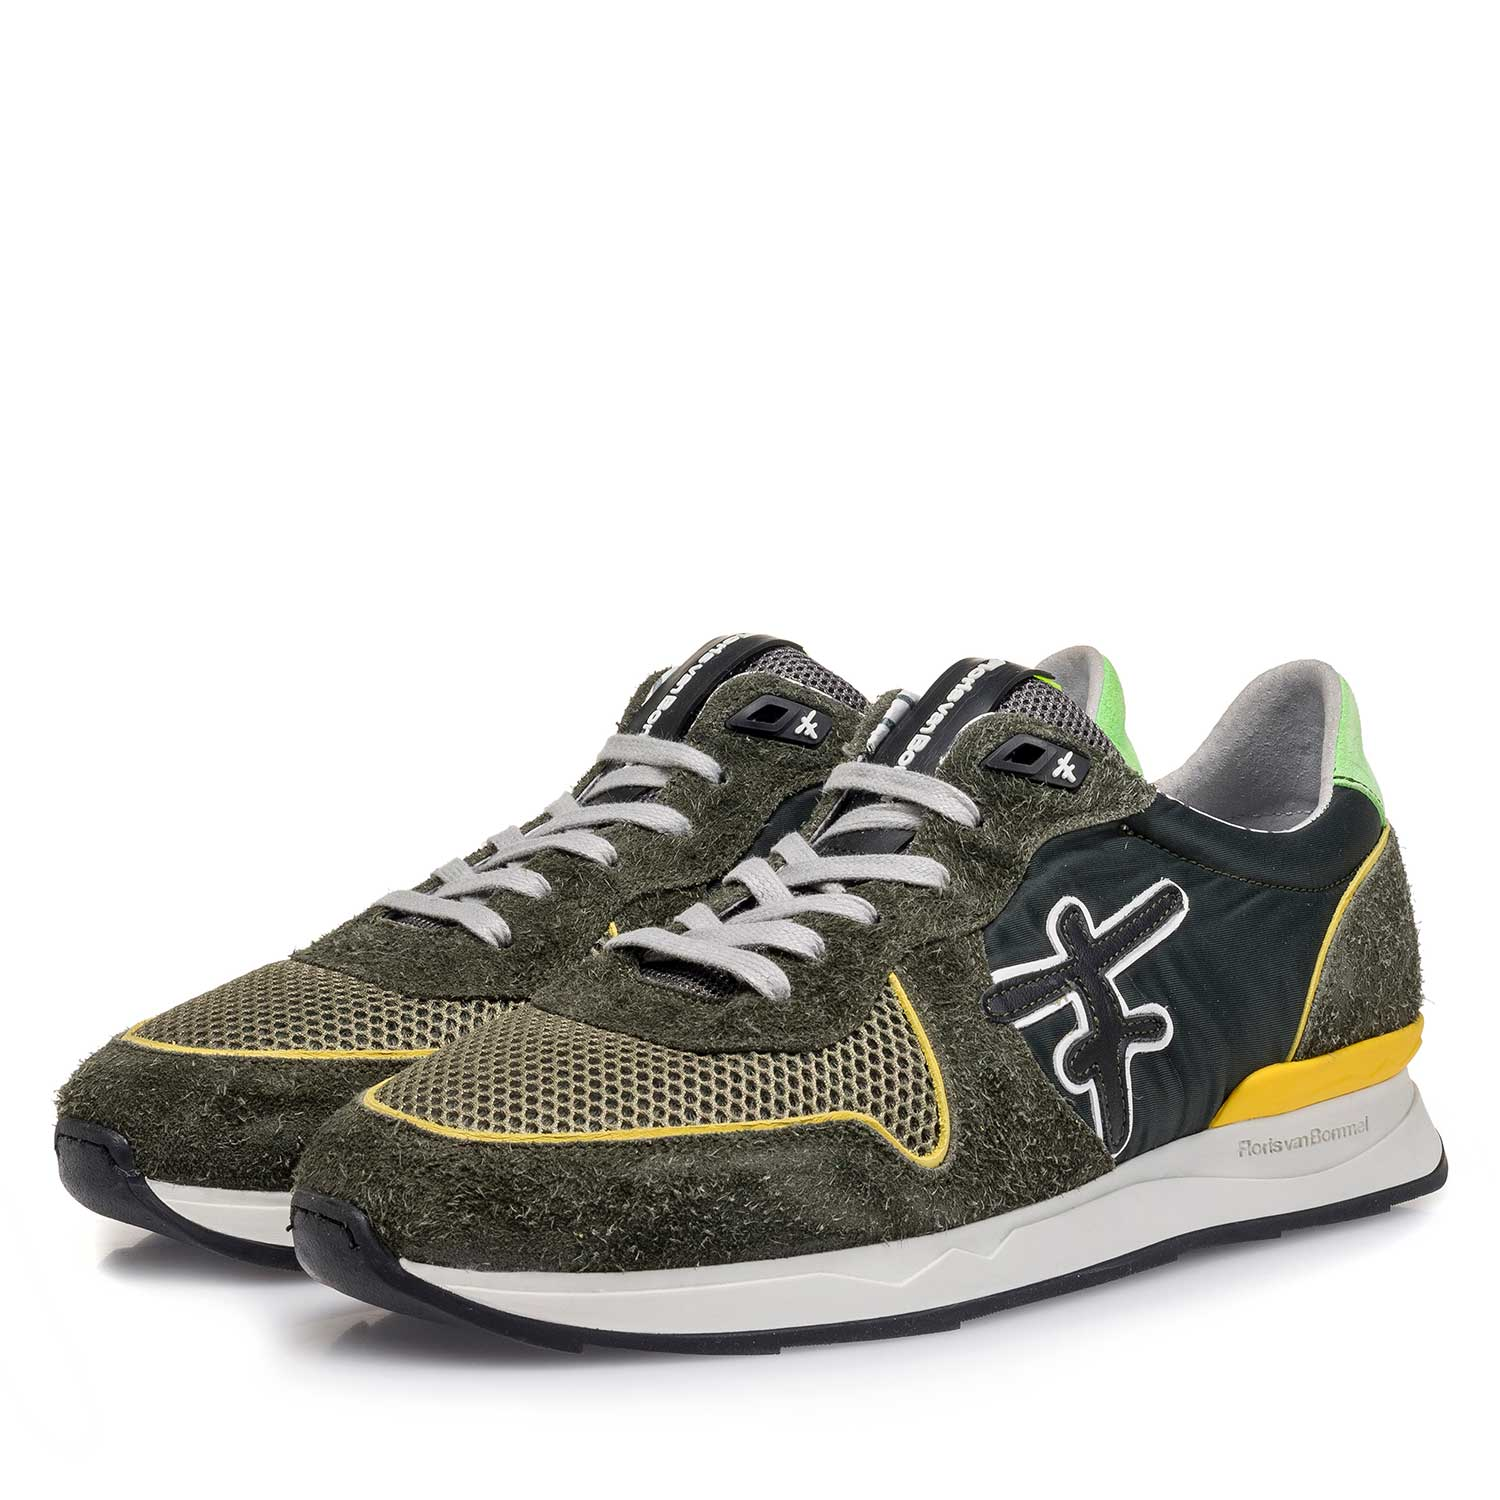 16246/02 - Green-yellow suede leather sneaker